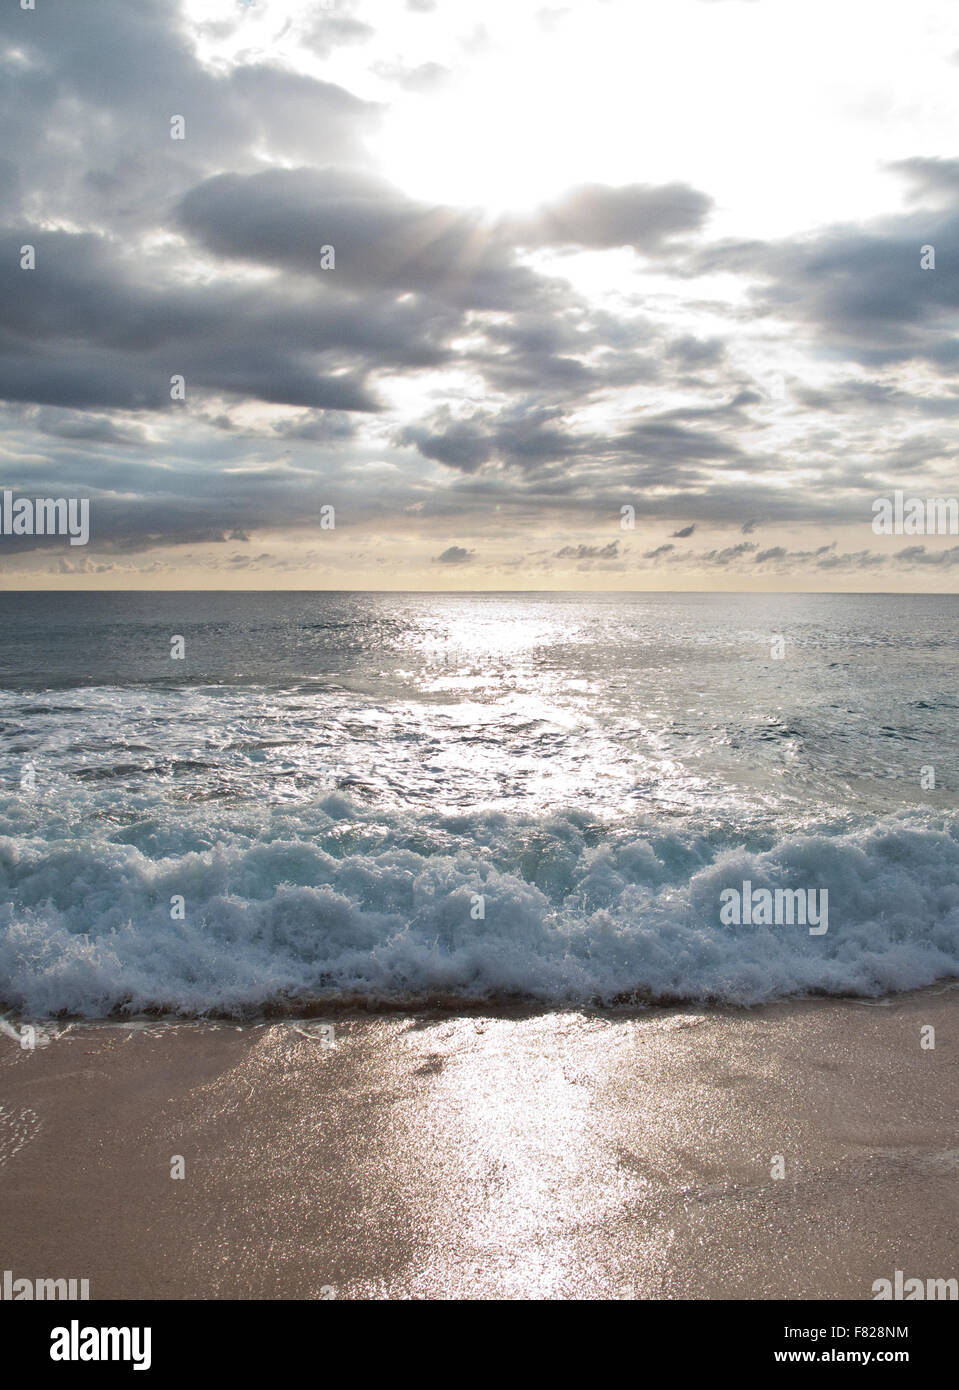 Surf at sunset - Stock Image